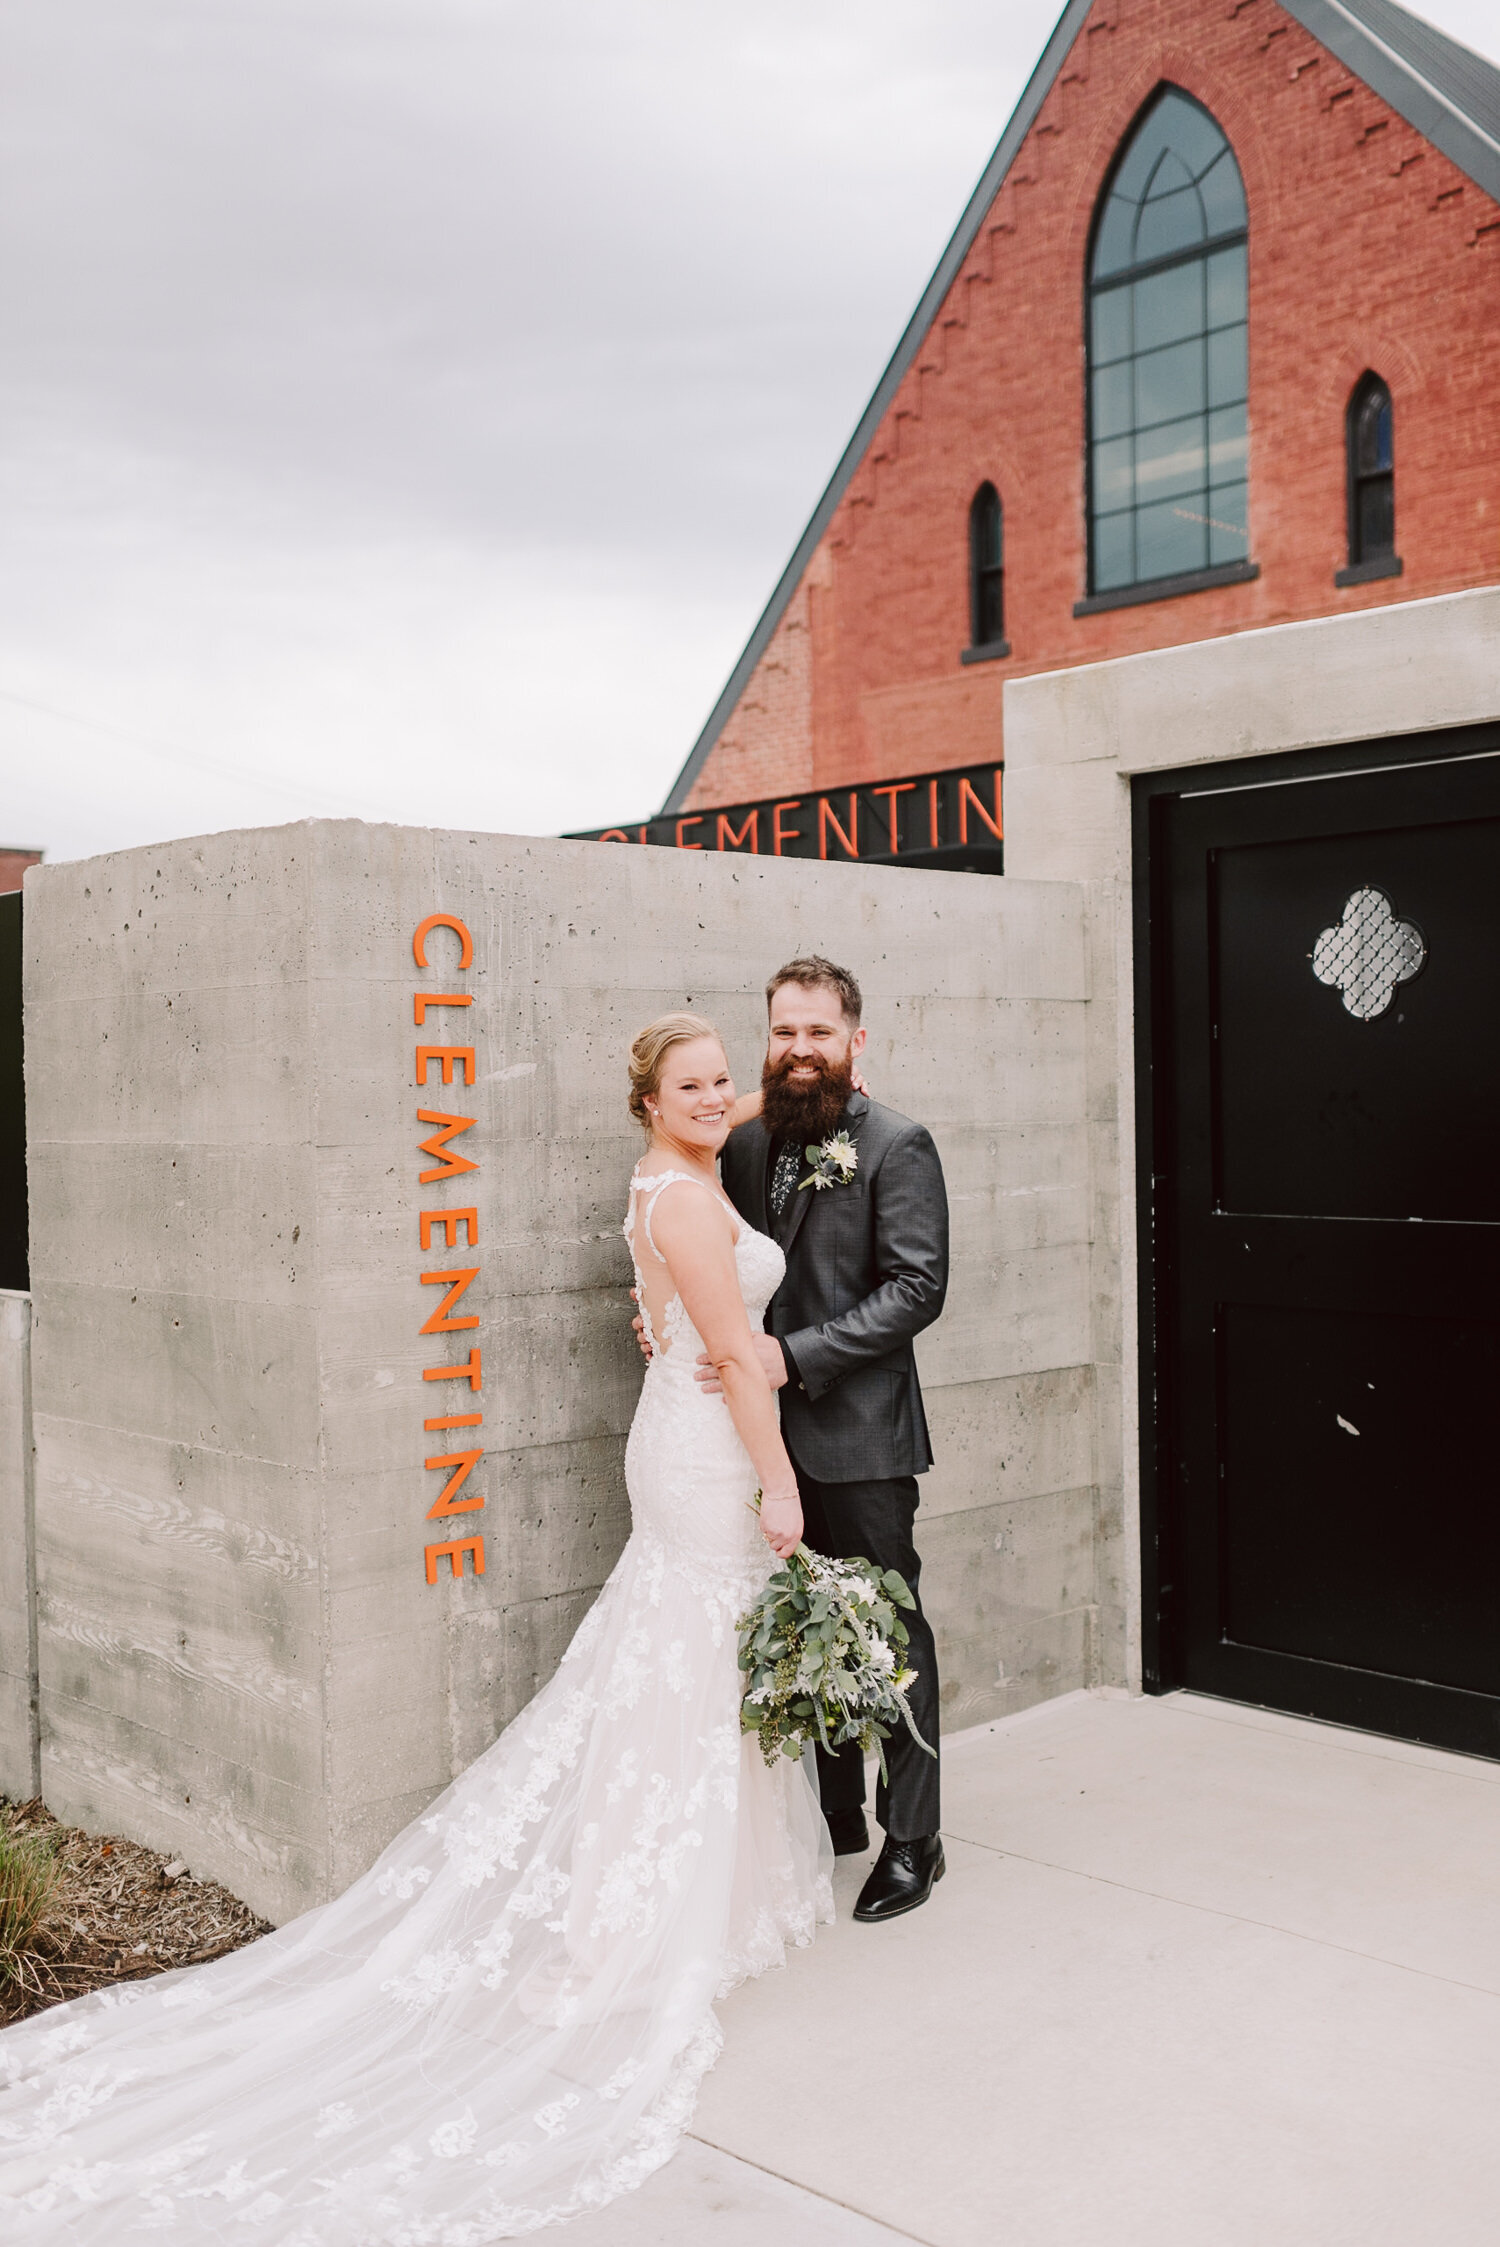 clementine-nashville-wedding-14